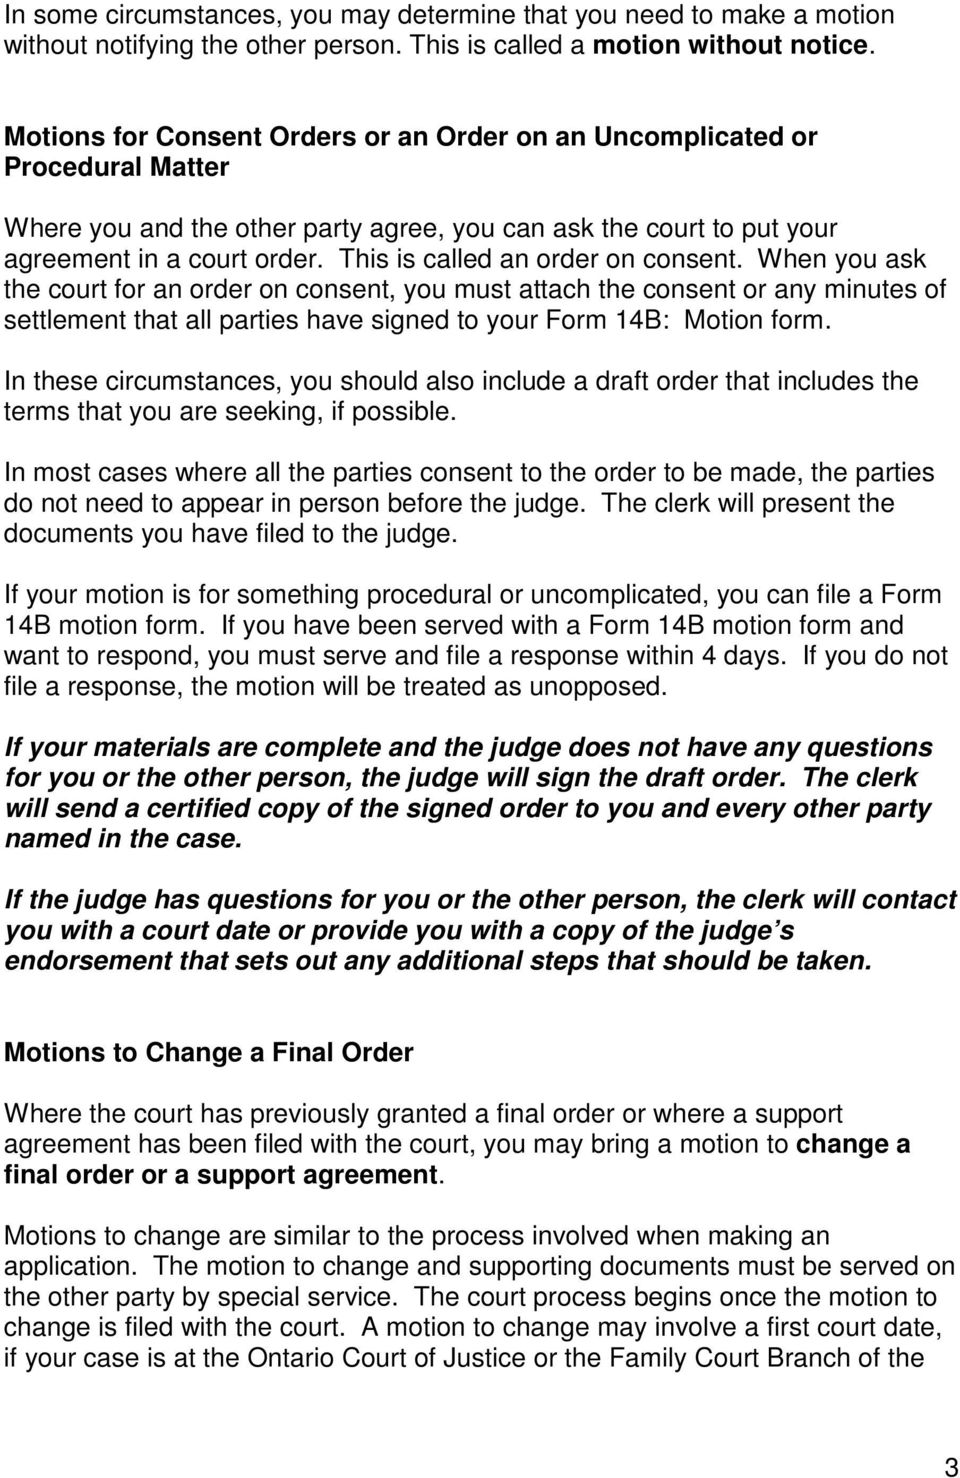 This is called an order on consent. When you ask the court for an order on consent, you must attach the consent or any minutes of settlement that all parties have signed to your Form 14B: Motion form.